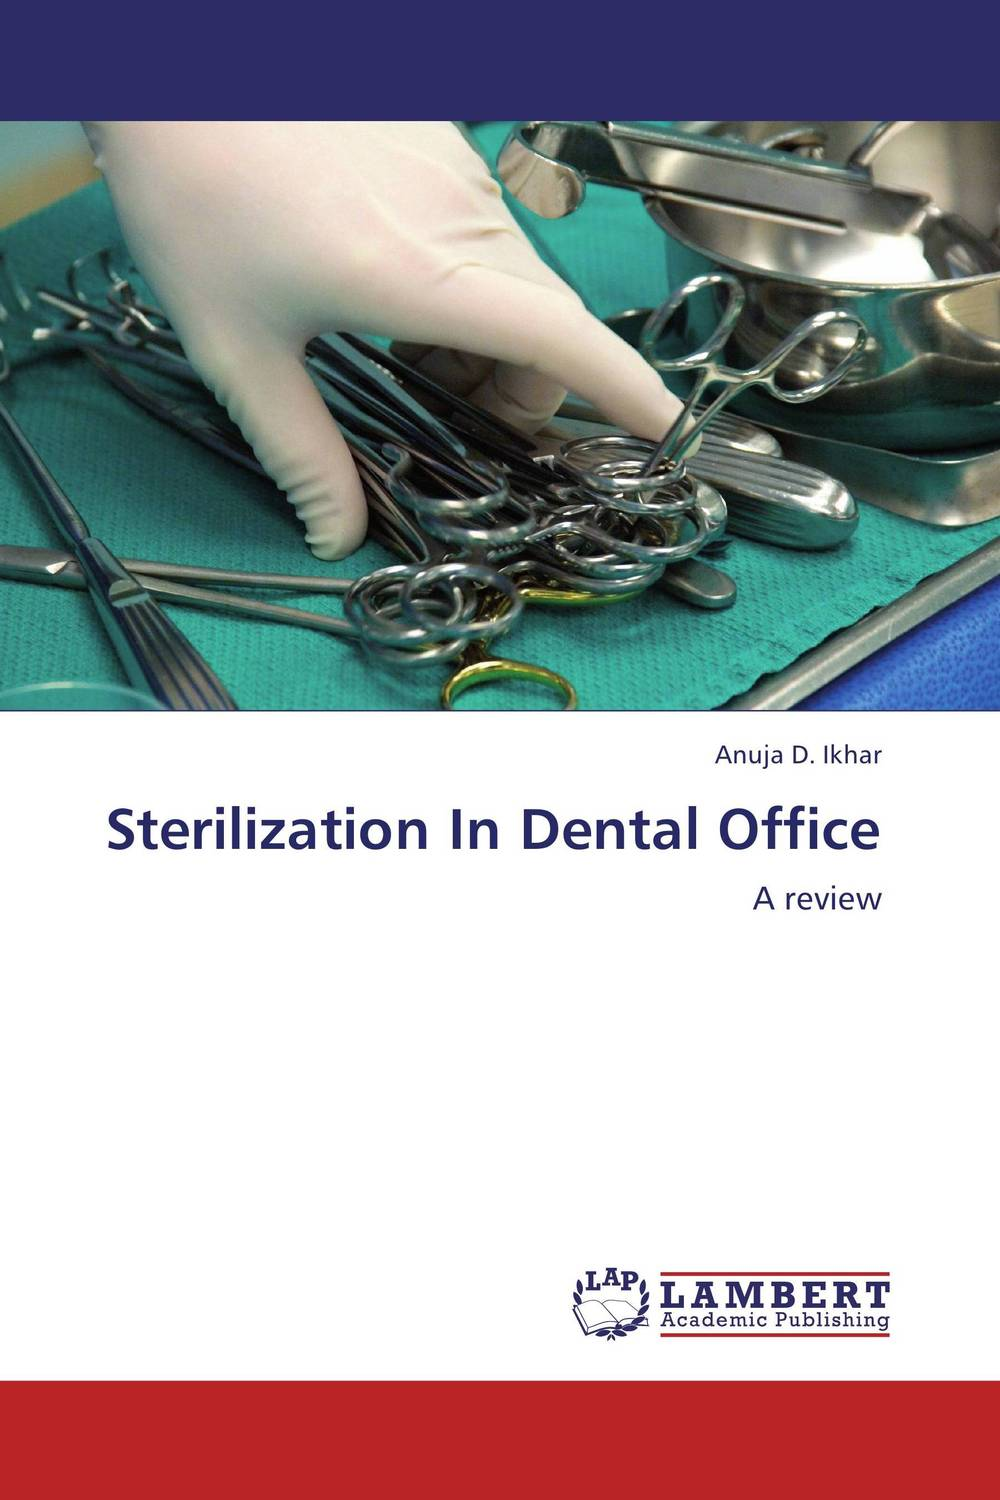 Sterilization In Dental Office